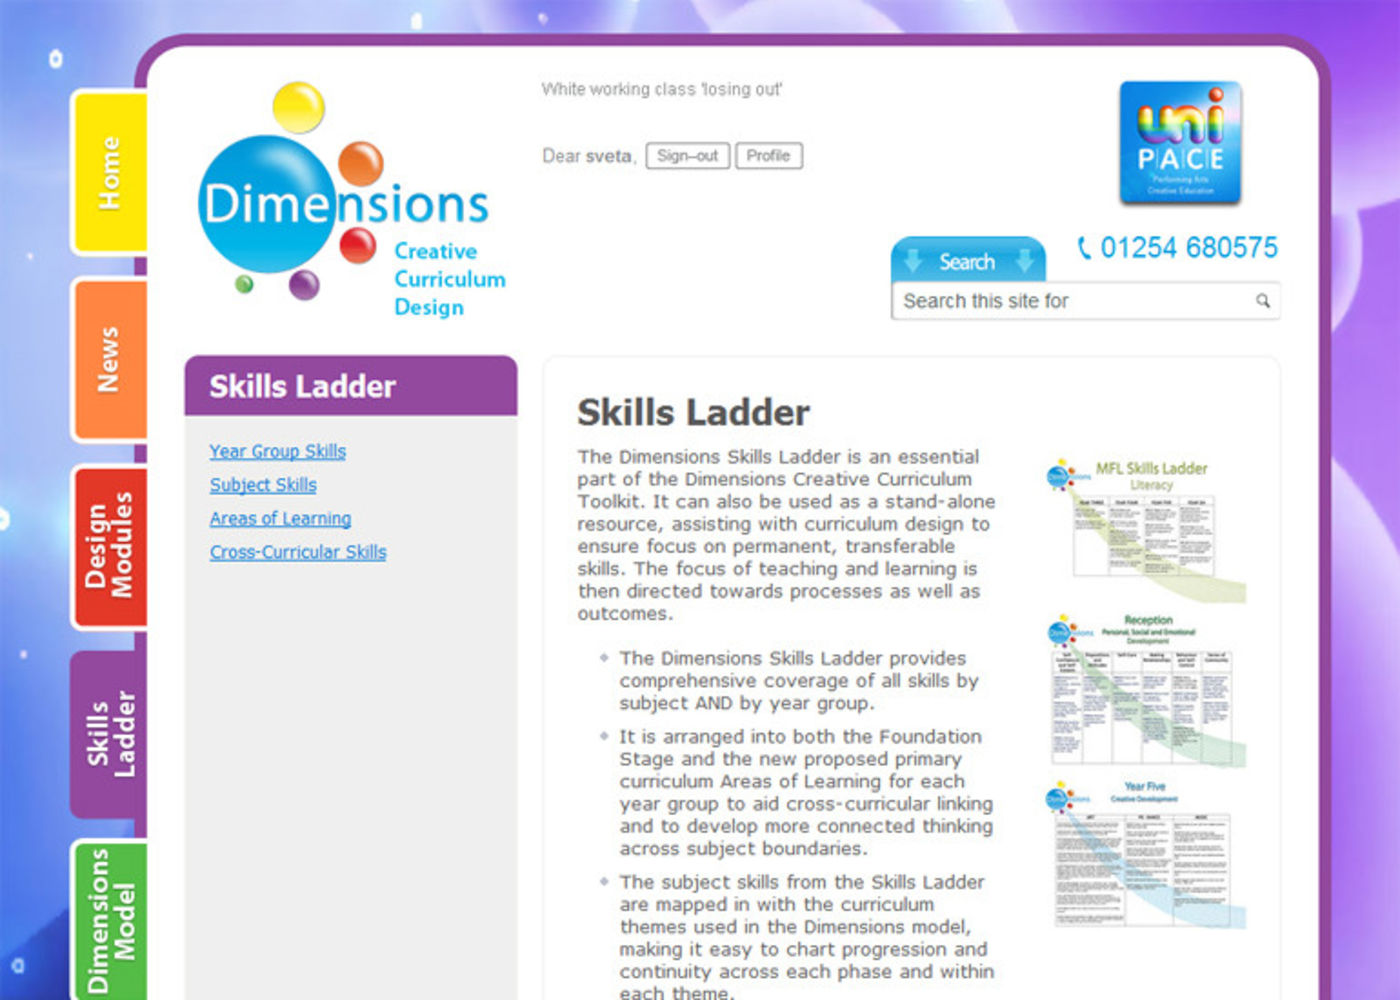 Dimensions Creative Curriculum Regular page